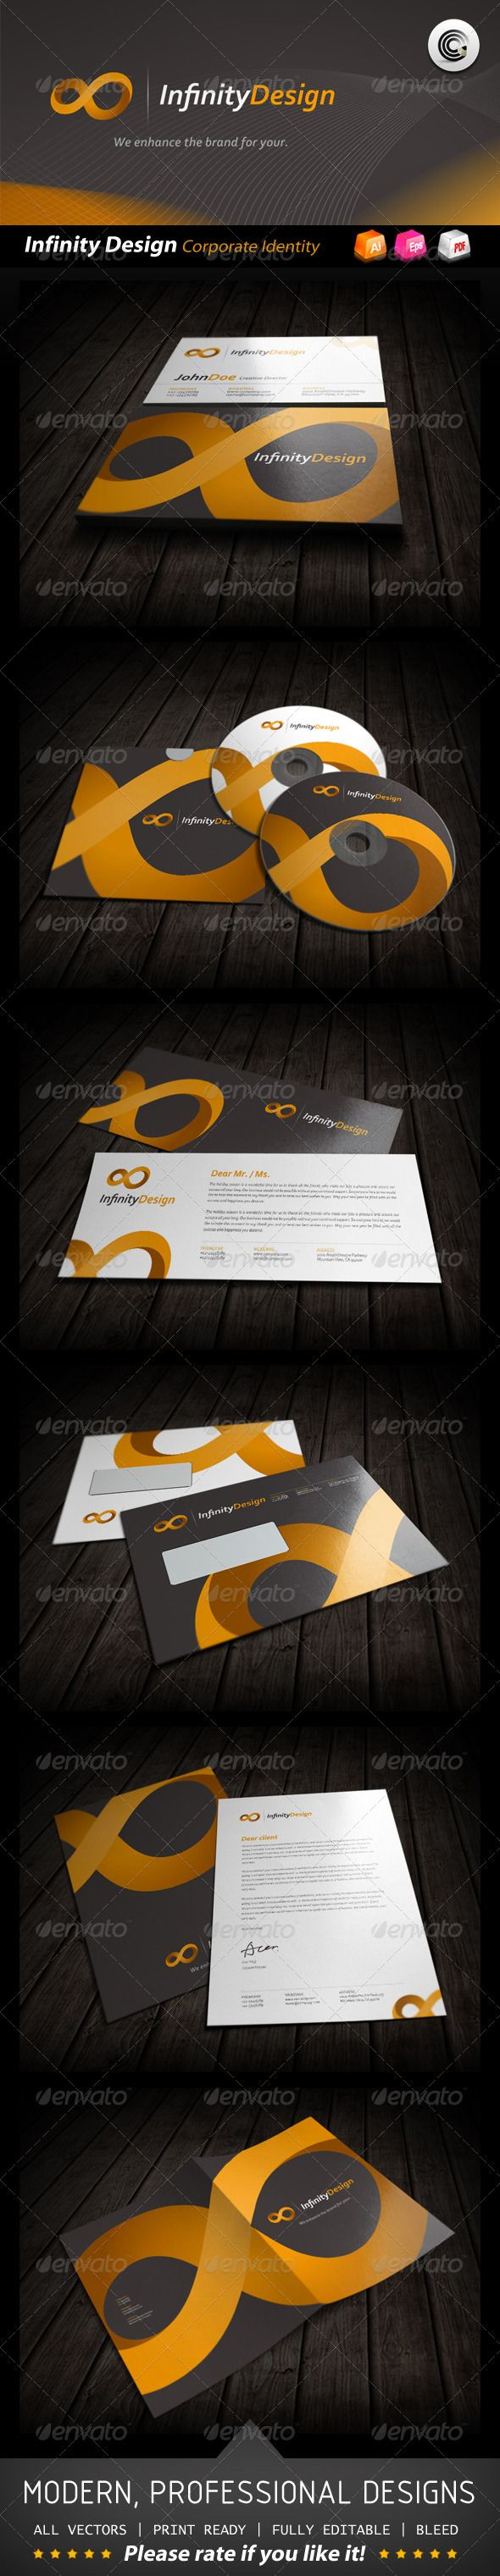 33 best set identidad images on pinterest html business cards infinity design corporate identity magicingreecefo Choice Image